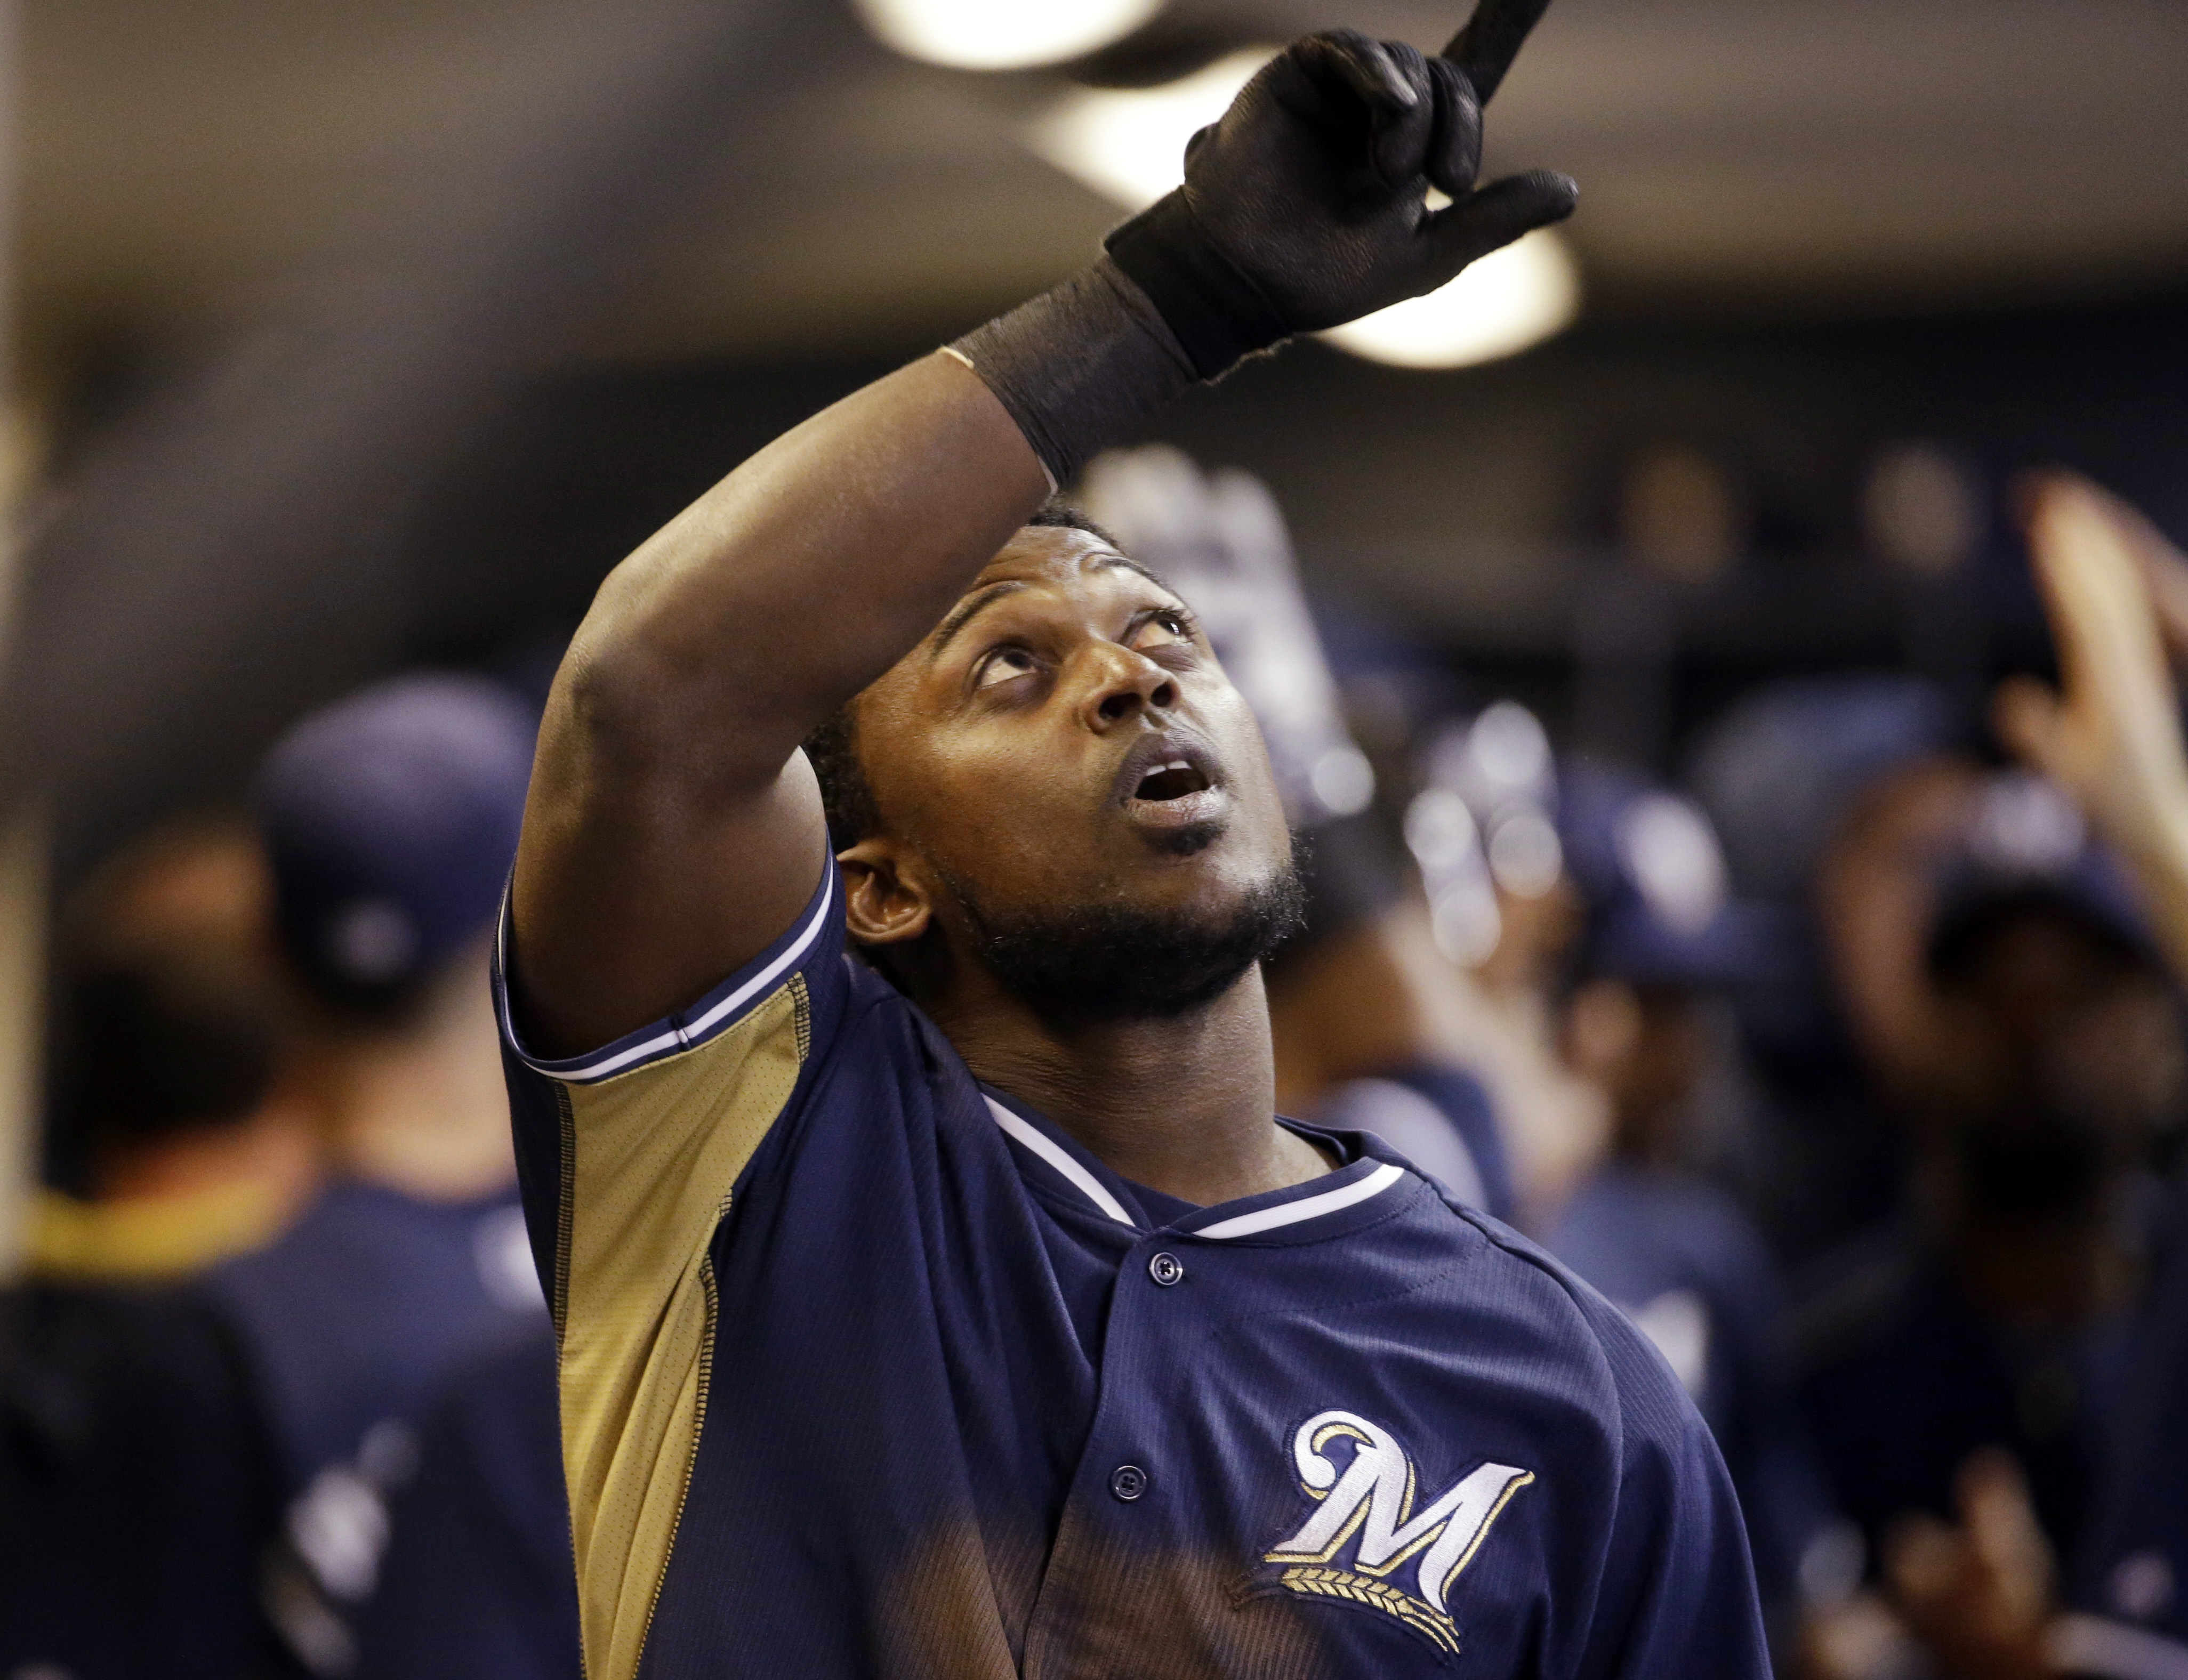 Milwaukee Brewers' Elian Herrera celebrates in the dugout after hitting a grand slam during the sixth inning of a baseball game against the Cincinnati Reds on Tuesday, April 21, 2015, in Milwaukee. (AP Photo/Morry Gash)